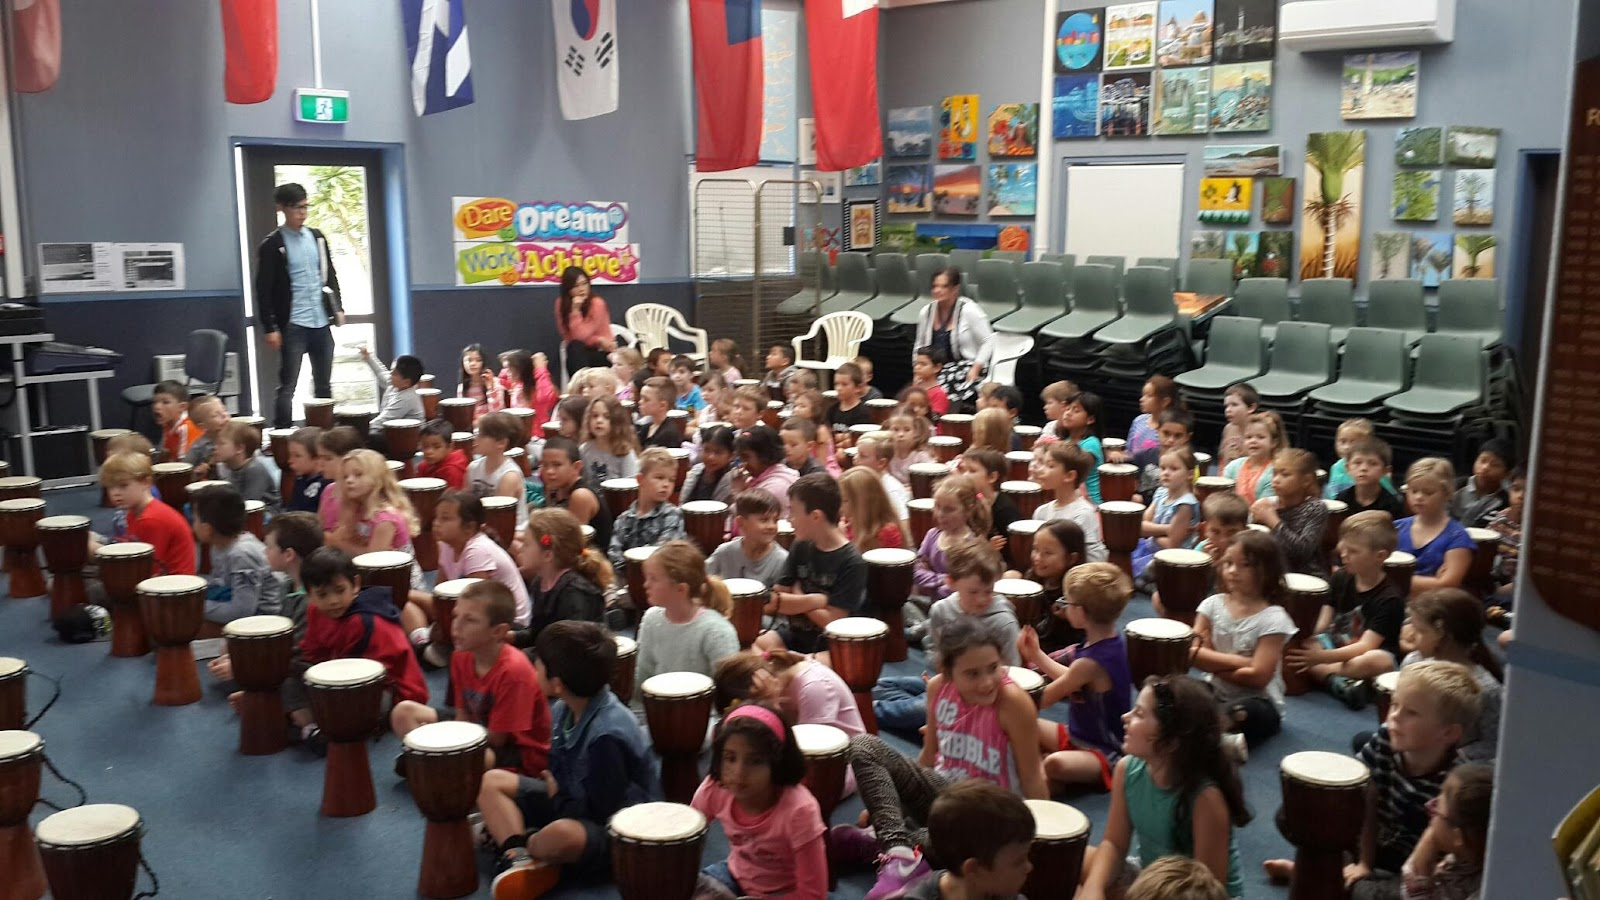 C:\Users\Michael\Downloads\drumshow\20160519_110717_resized_1.jpg